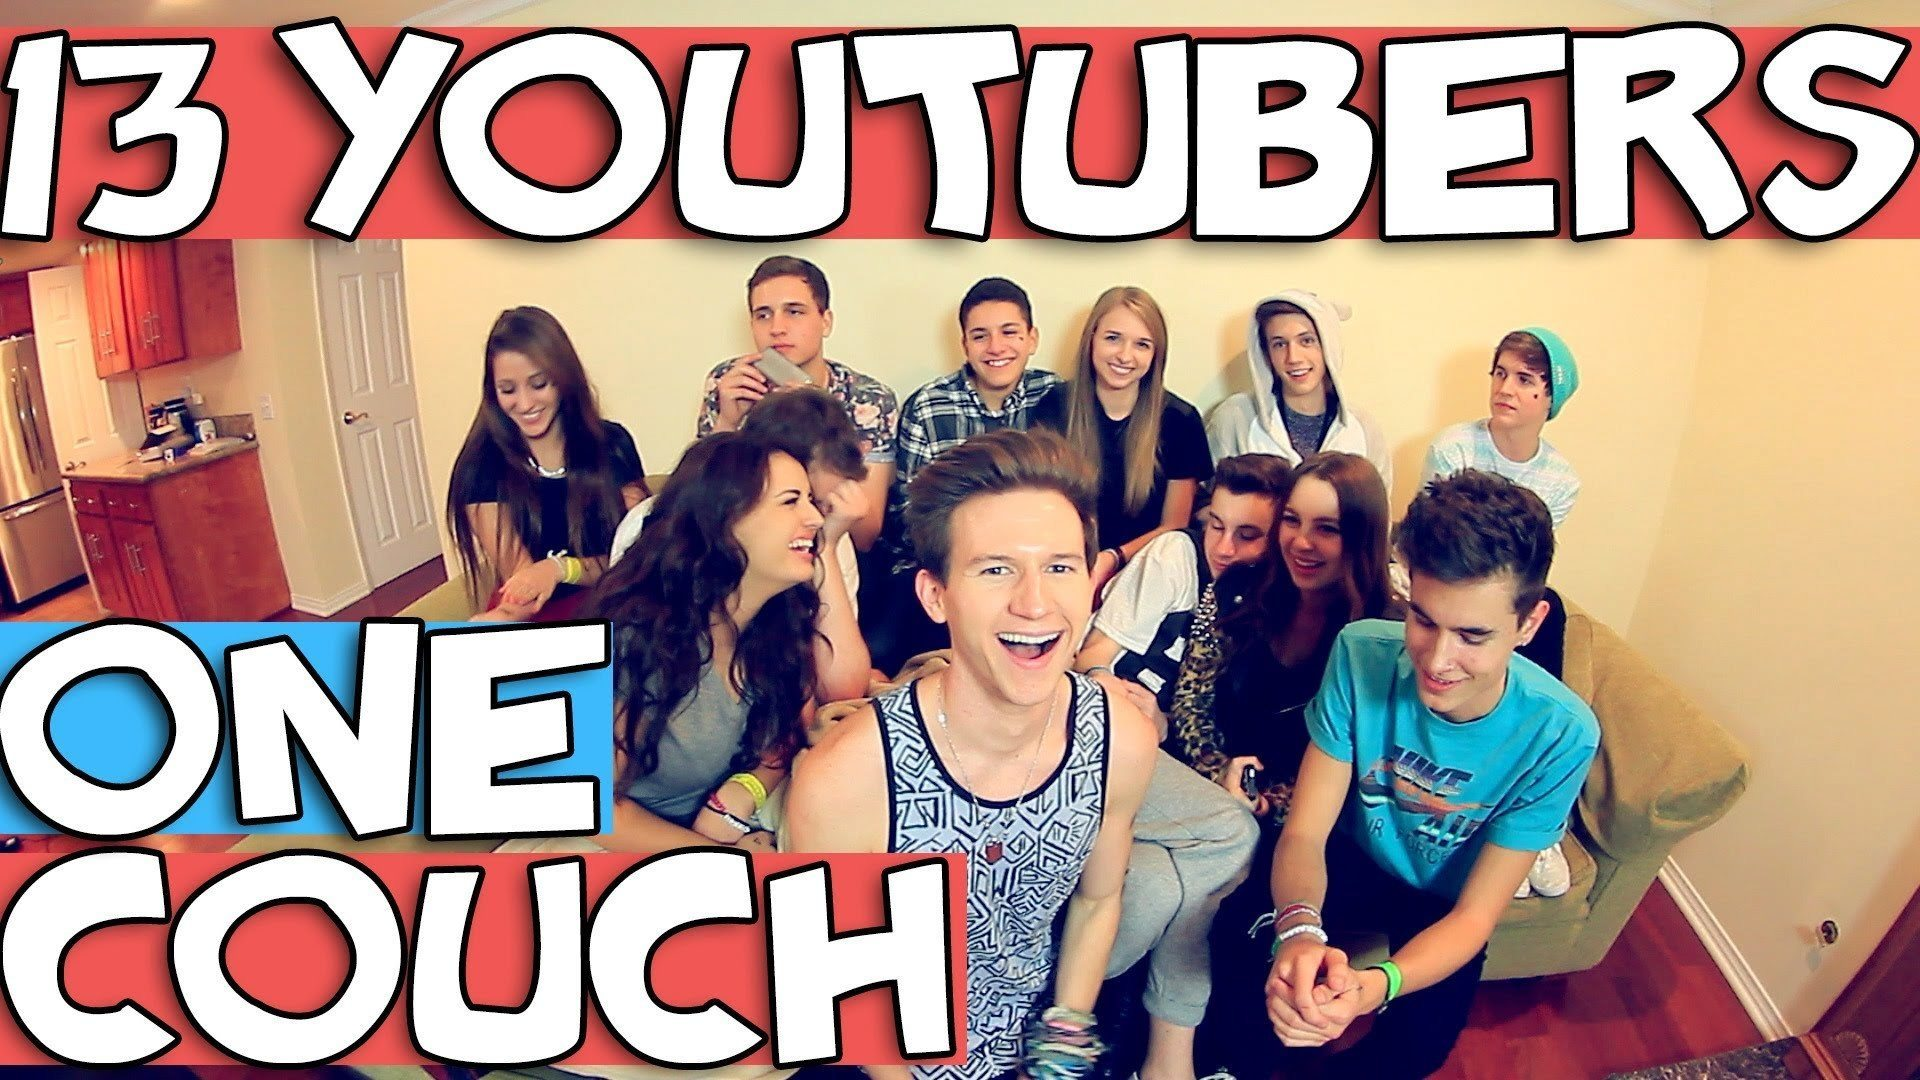 13 YouTubers, One Couch